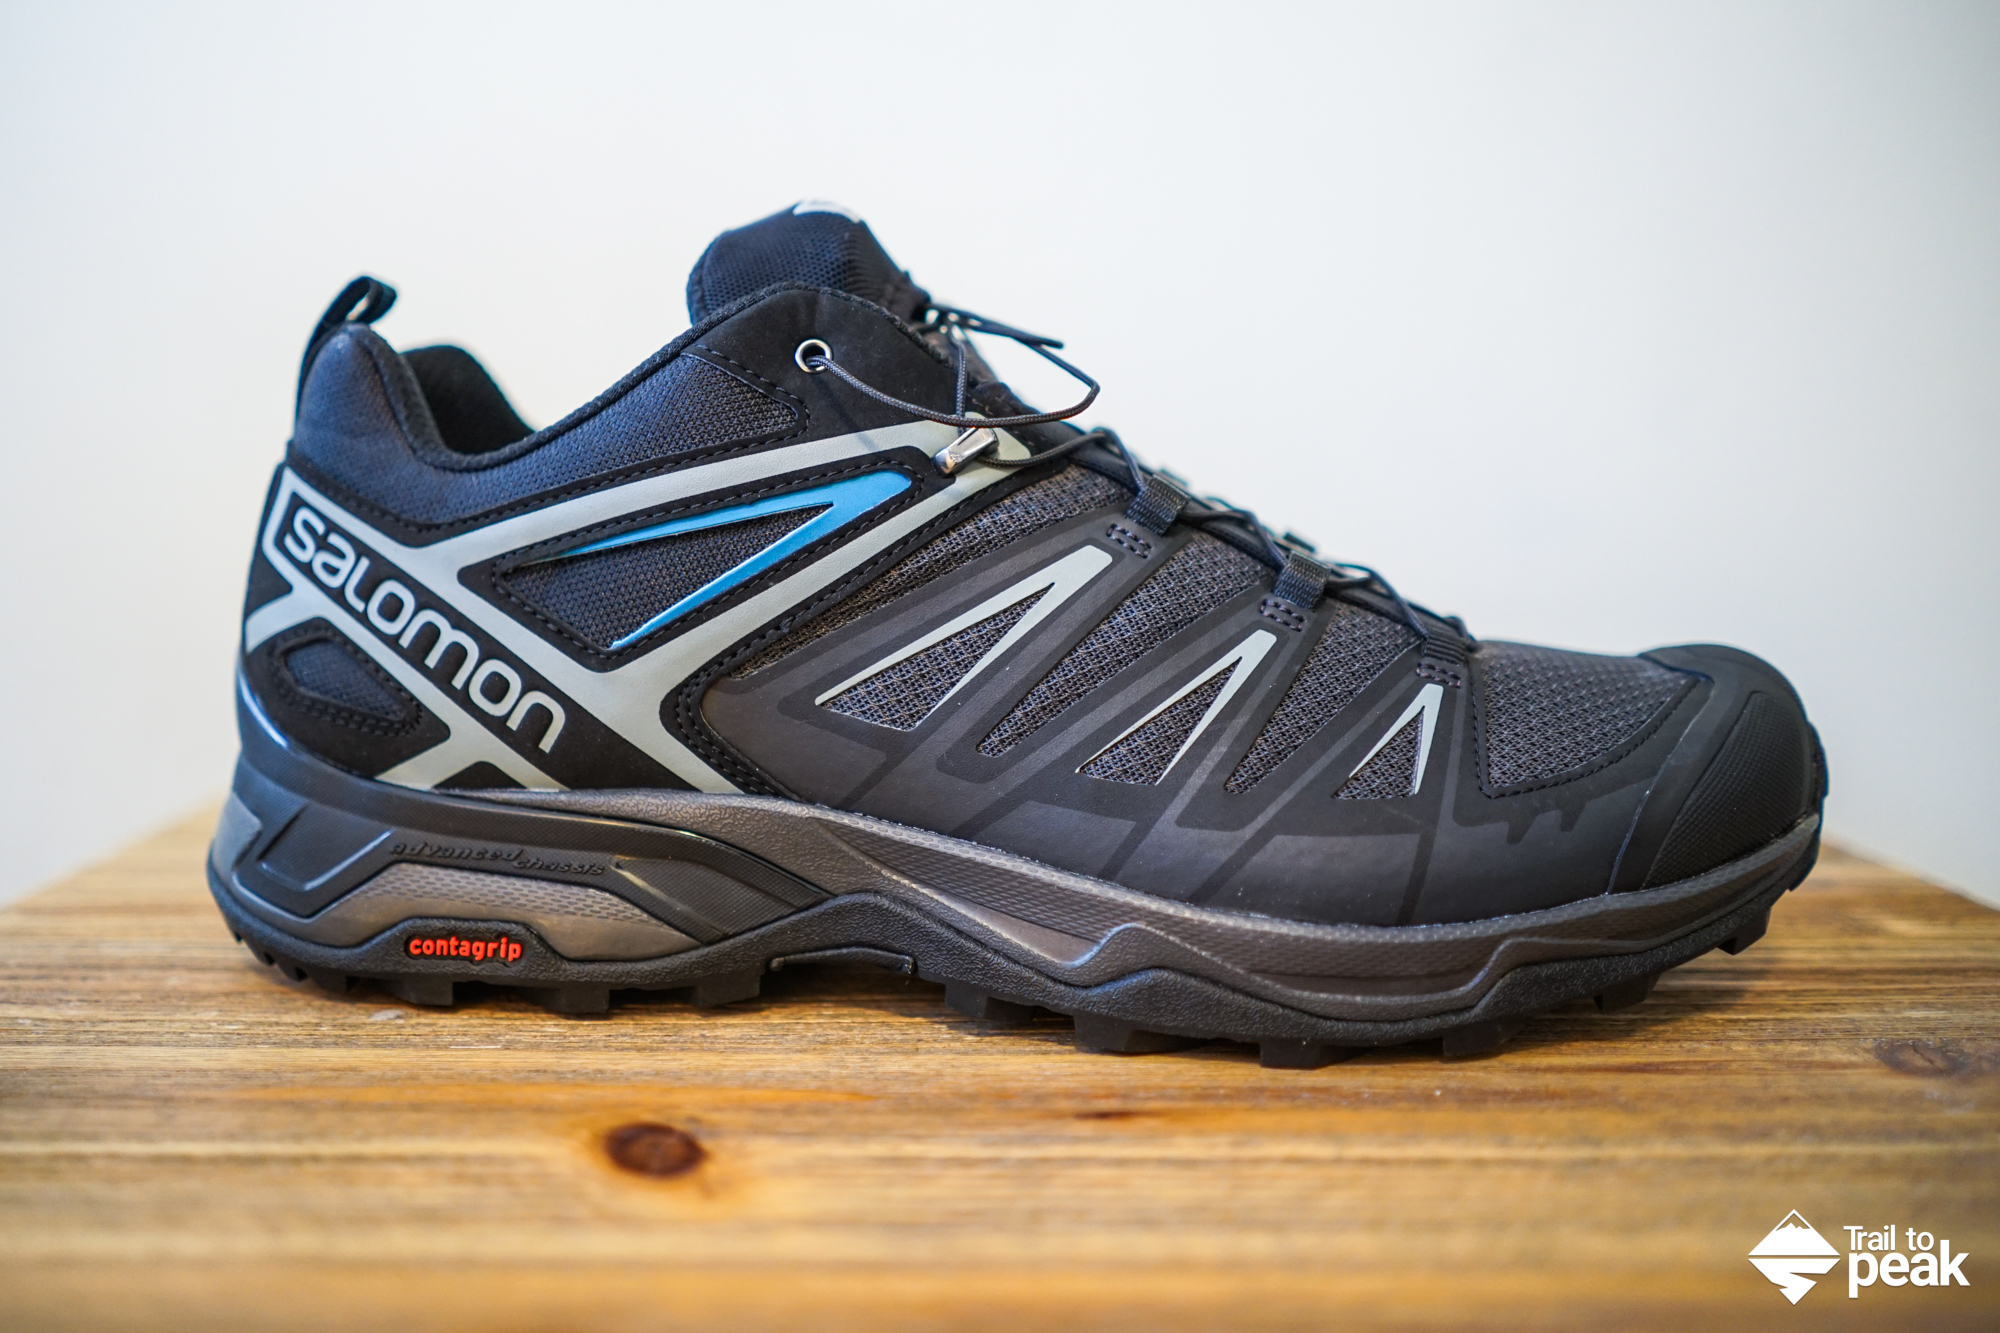 Ultra Trail to Peak Gear Trail Sense Review Shoe Salomon Pro tFvwqRX6v